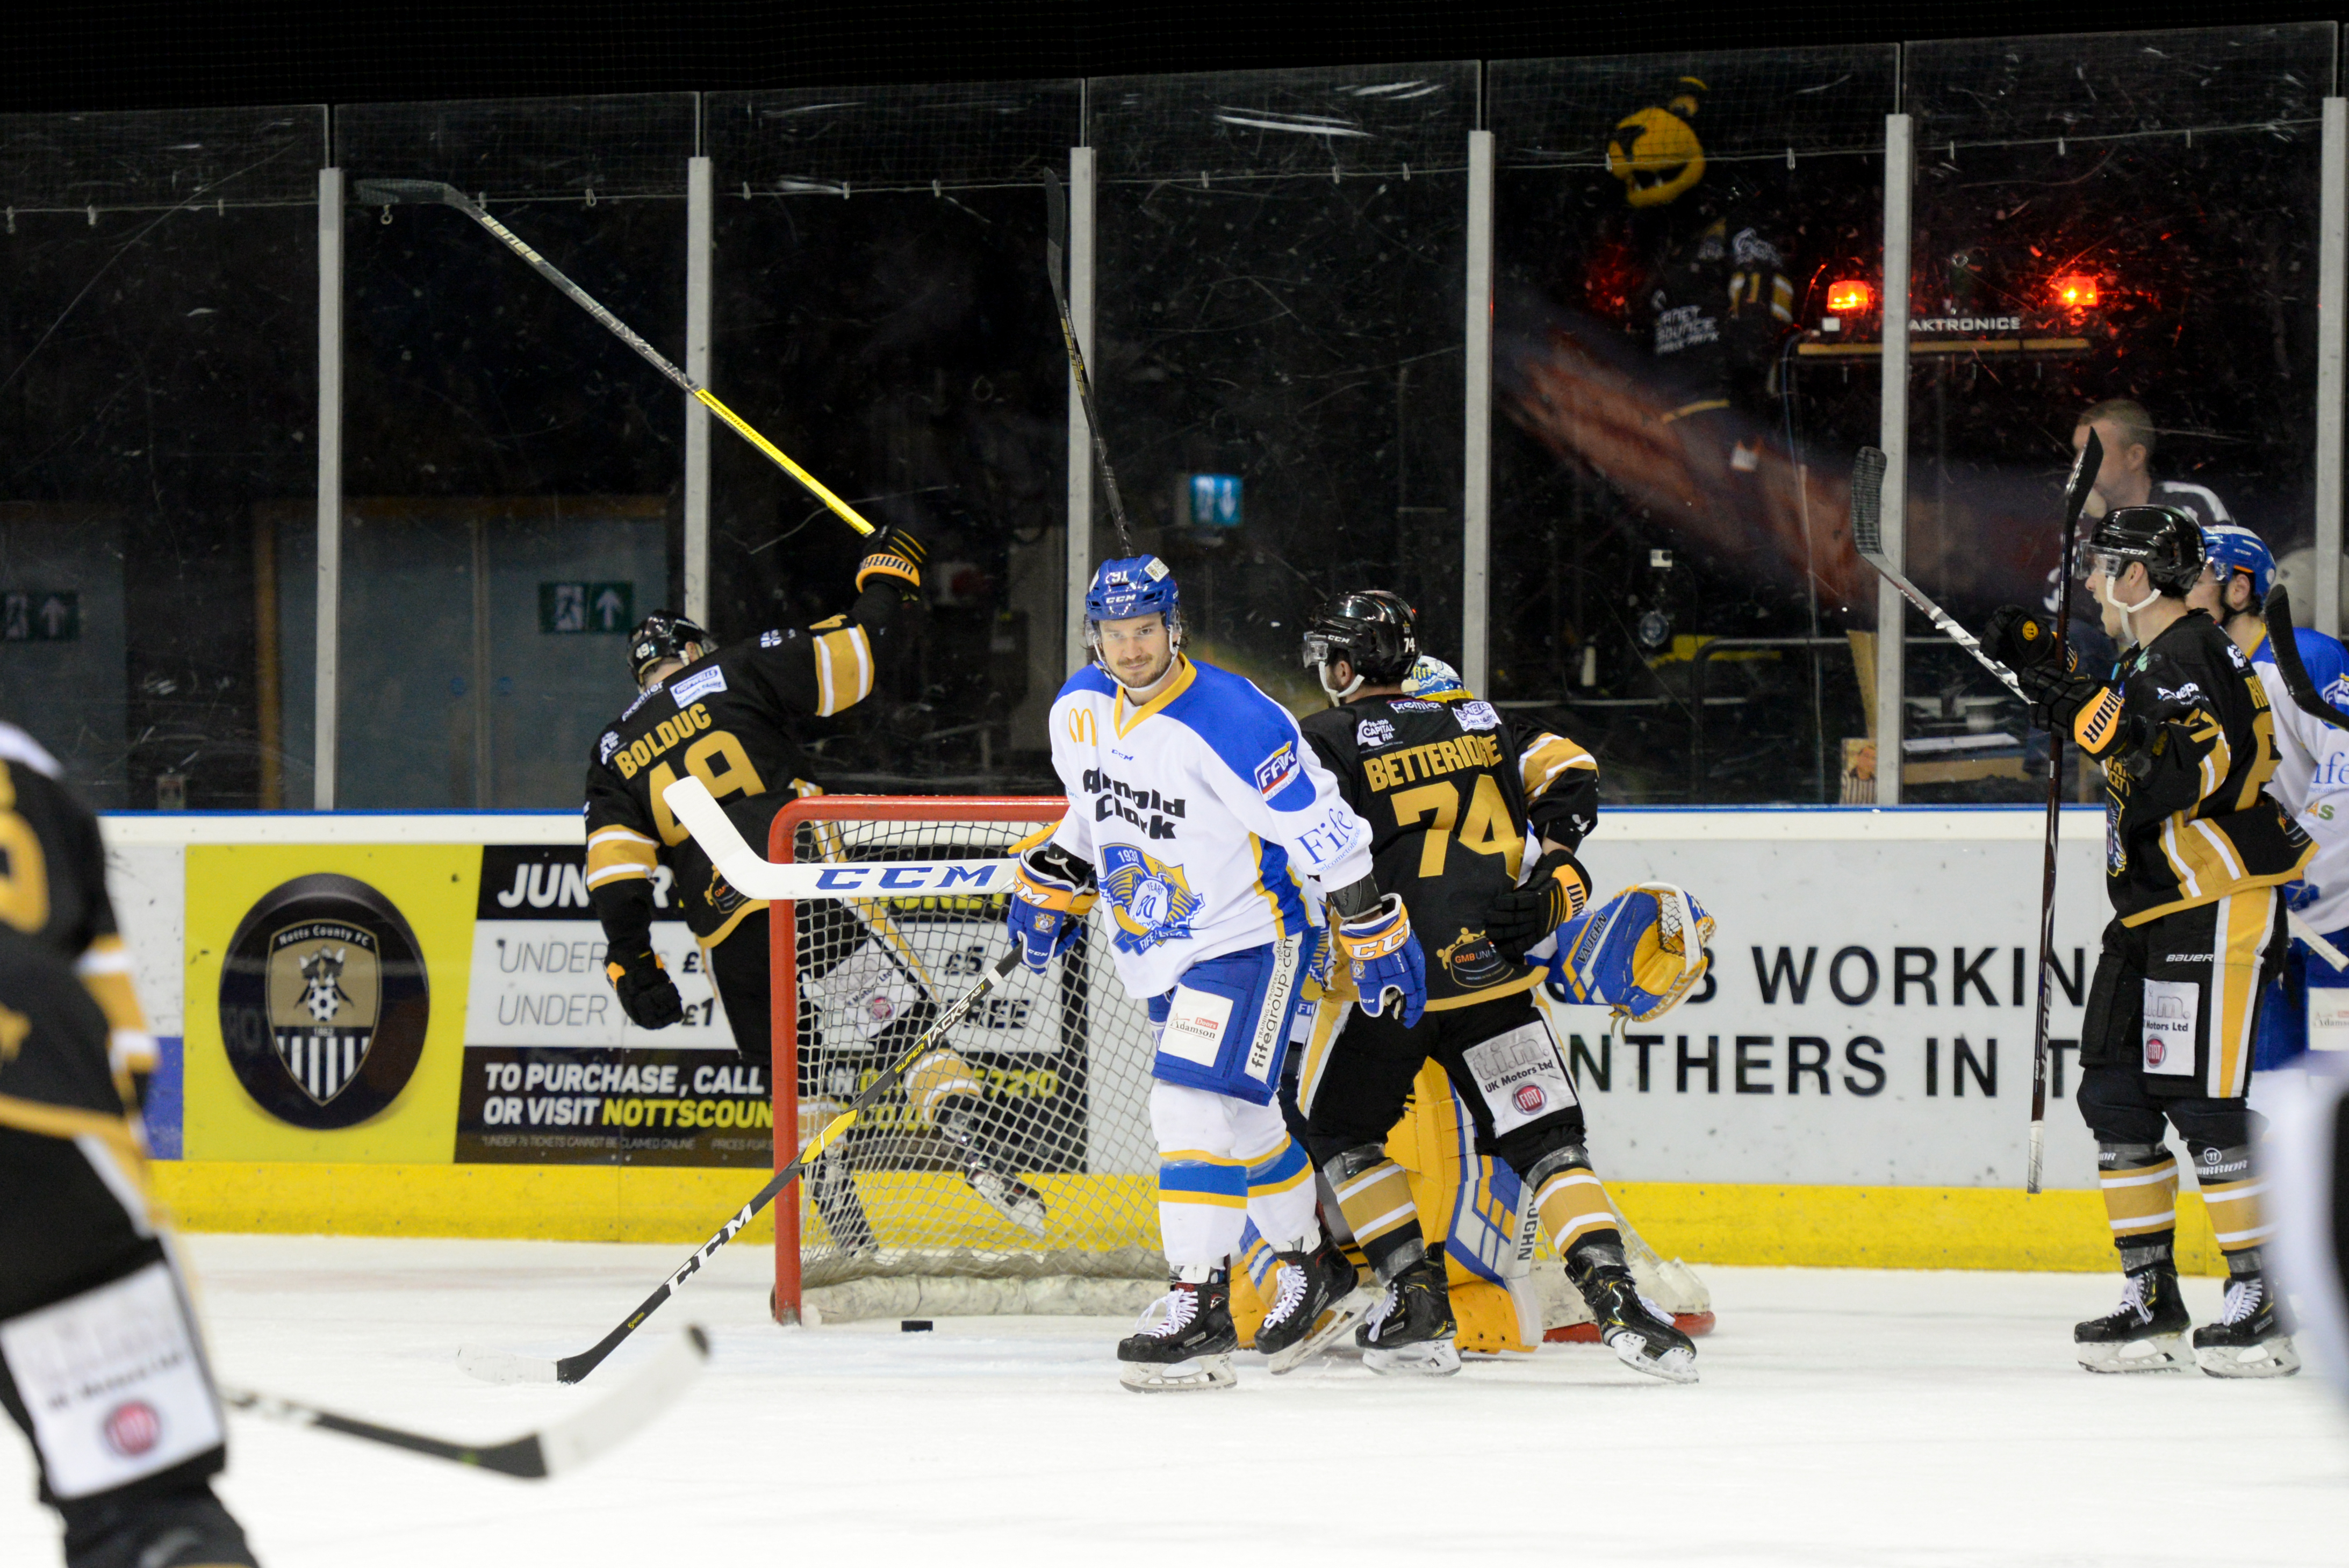 Highlights: Panthers vs Flyers - 05/01/19 Top Image